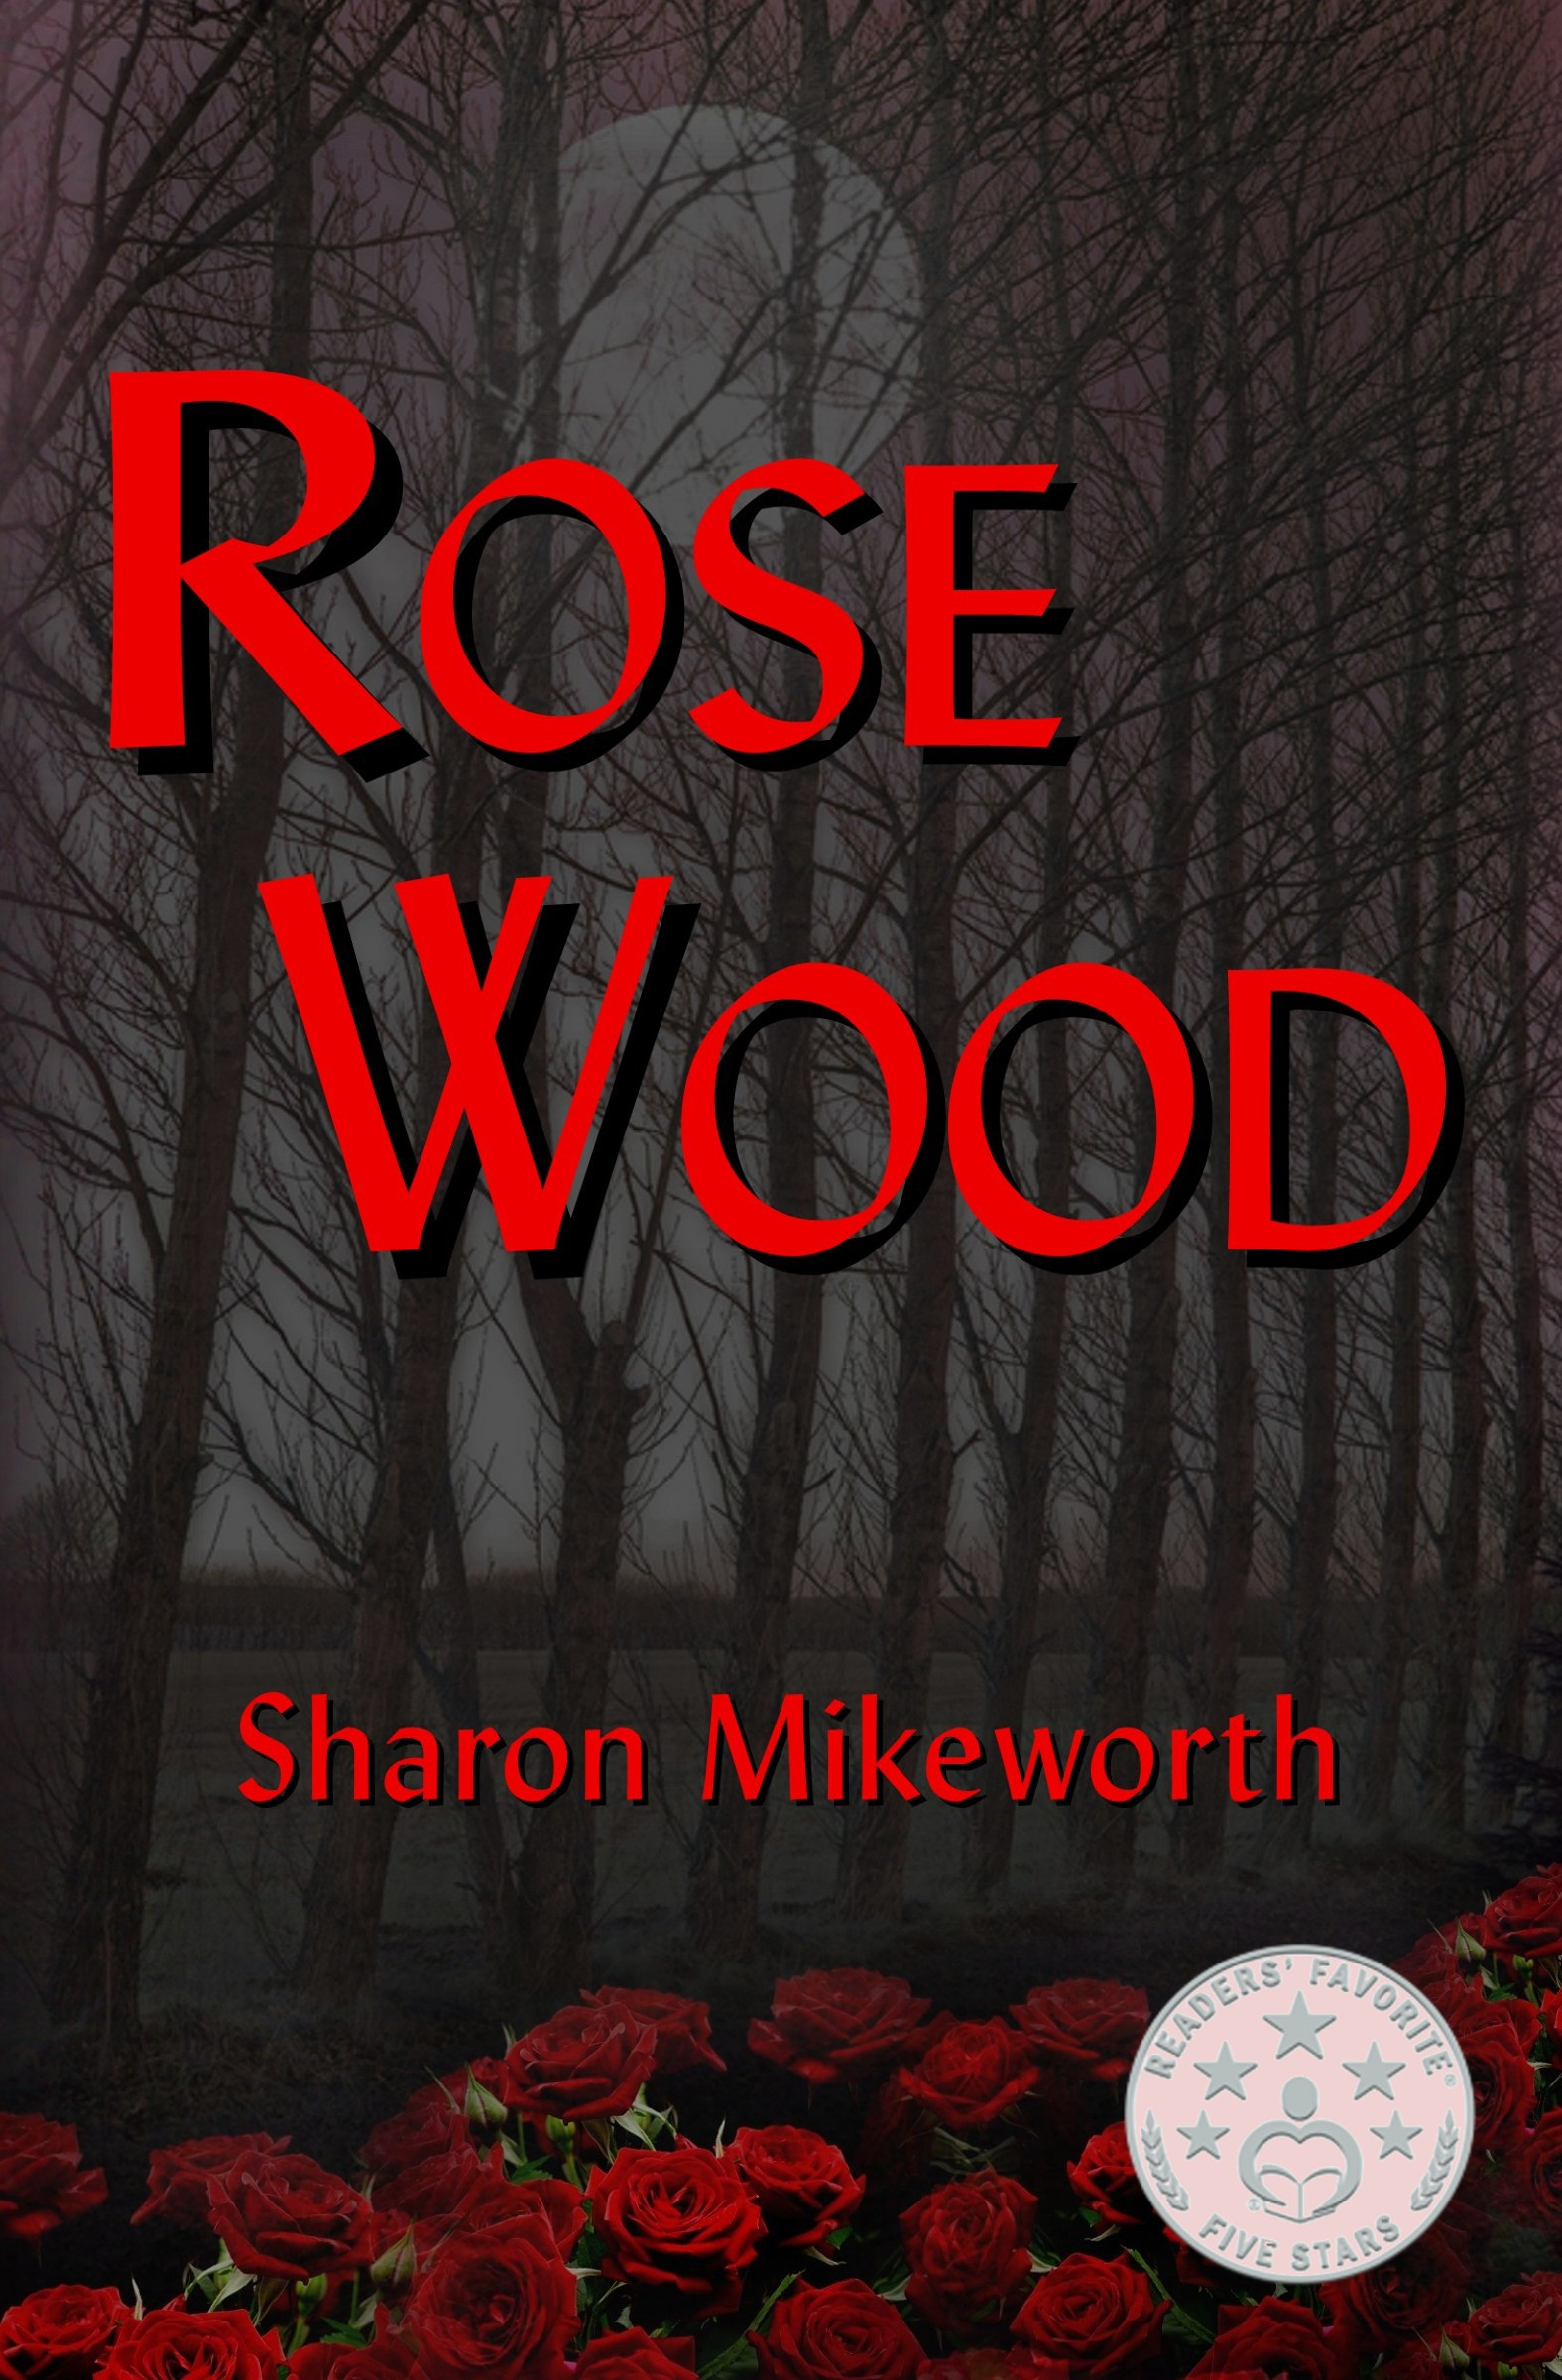 More about Rose Wood